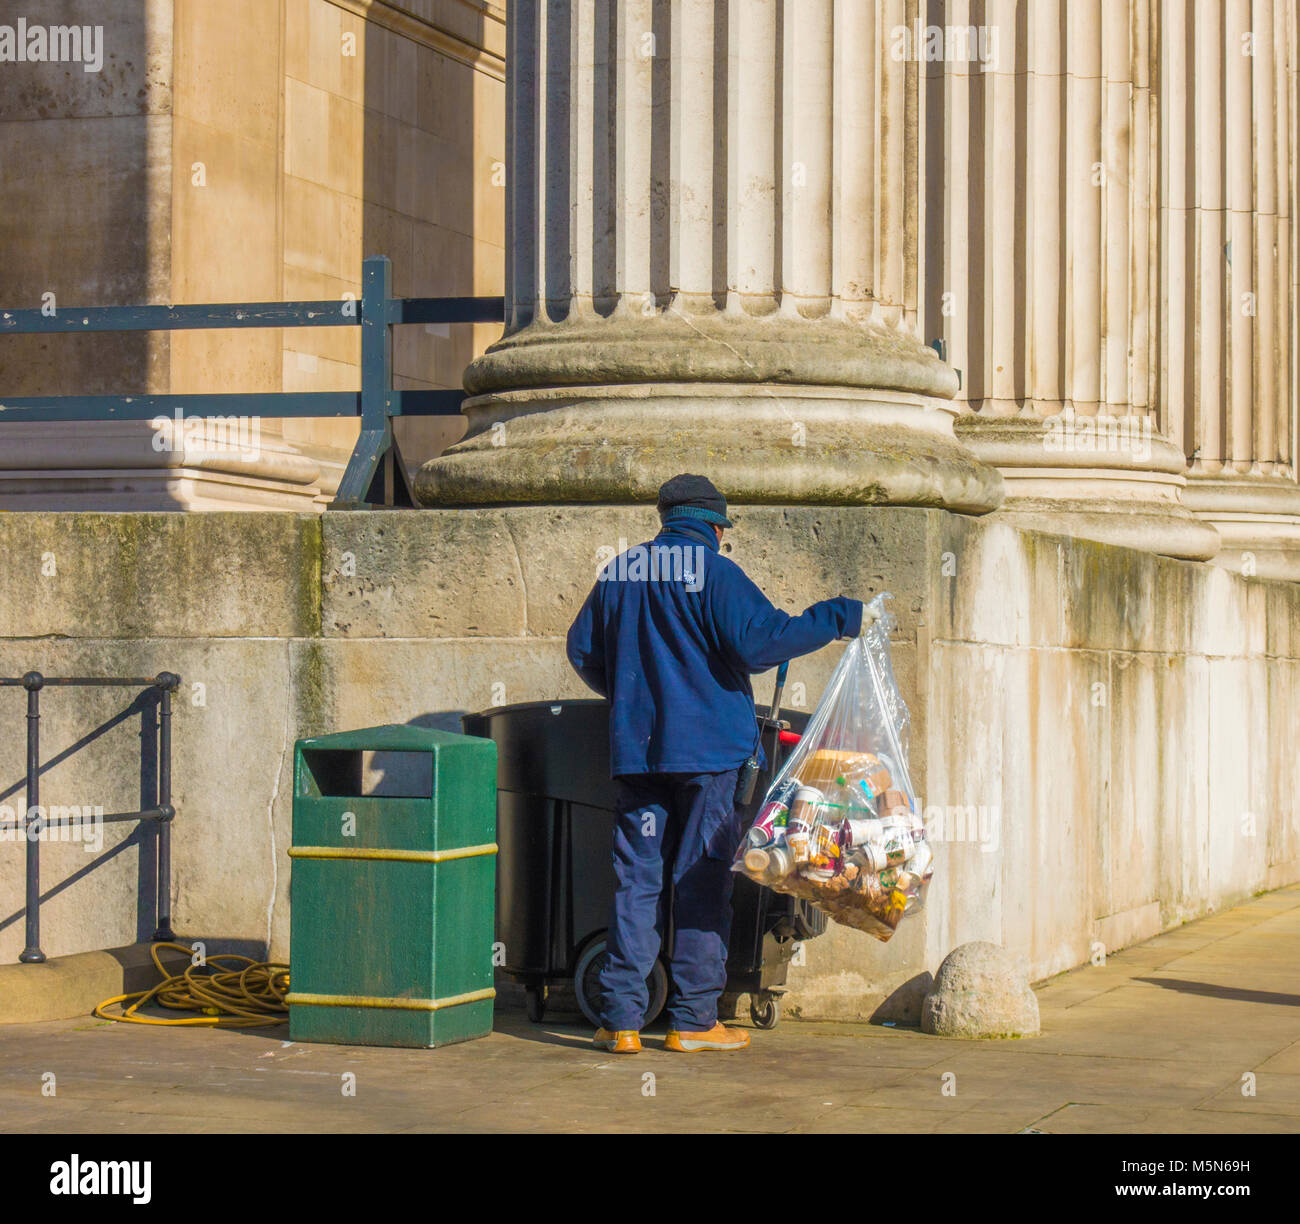 London worker outside The British Museum, lifting a full bin bag of mainly disposable cups, to place into a wheeled - Stock Image